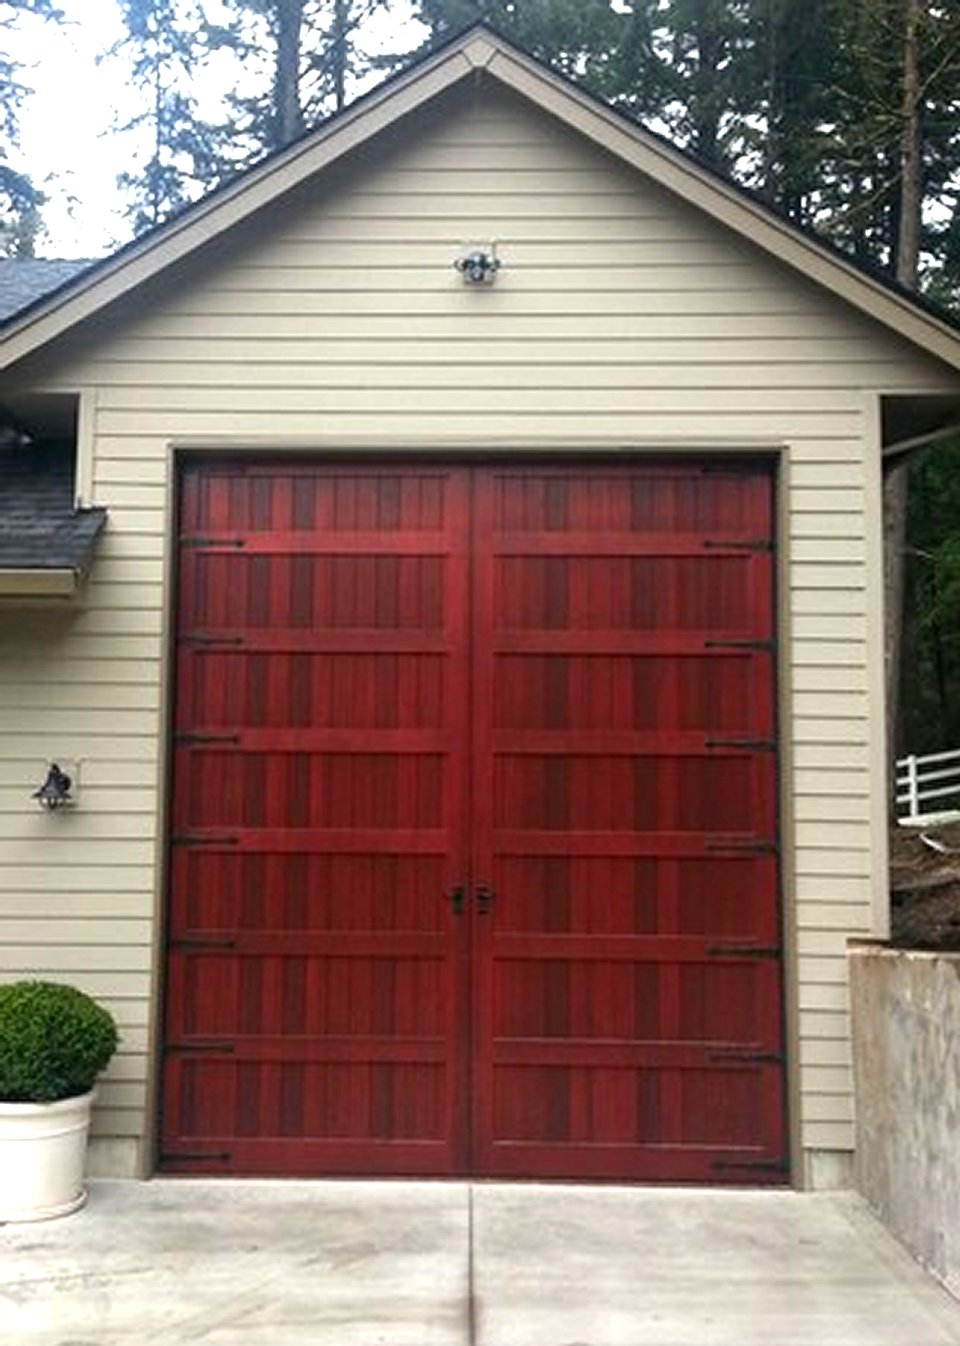 Bi fold carriage doors 16 ft x 8 ft insulated wood for How tall is an rv garage door